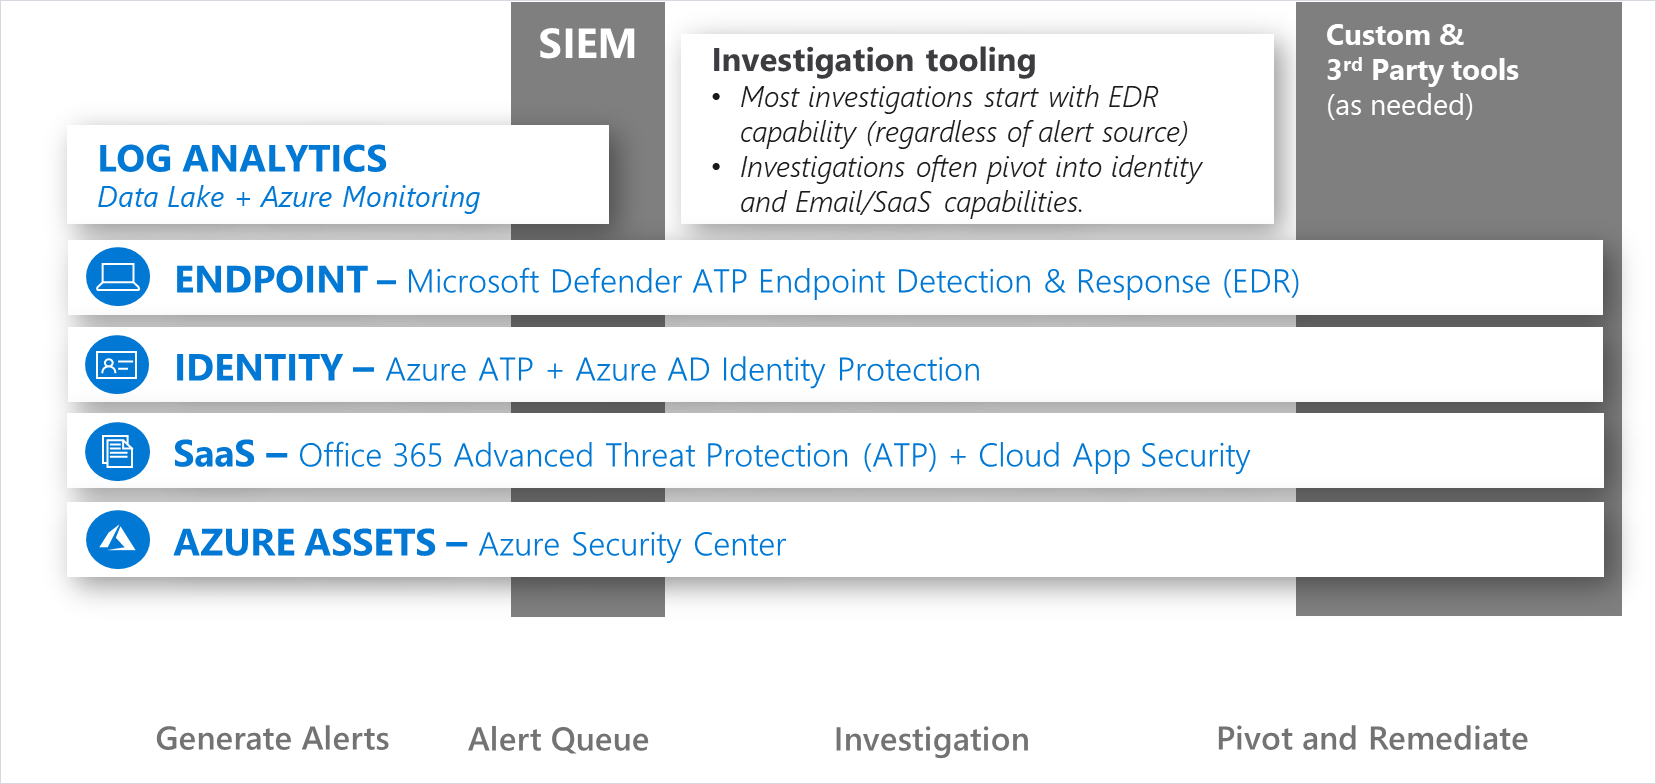 Infographic showing Investigation tooling in SIEM: Log analytics, Endpoint, Identity, Saas, and Azure Assets.